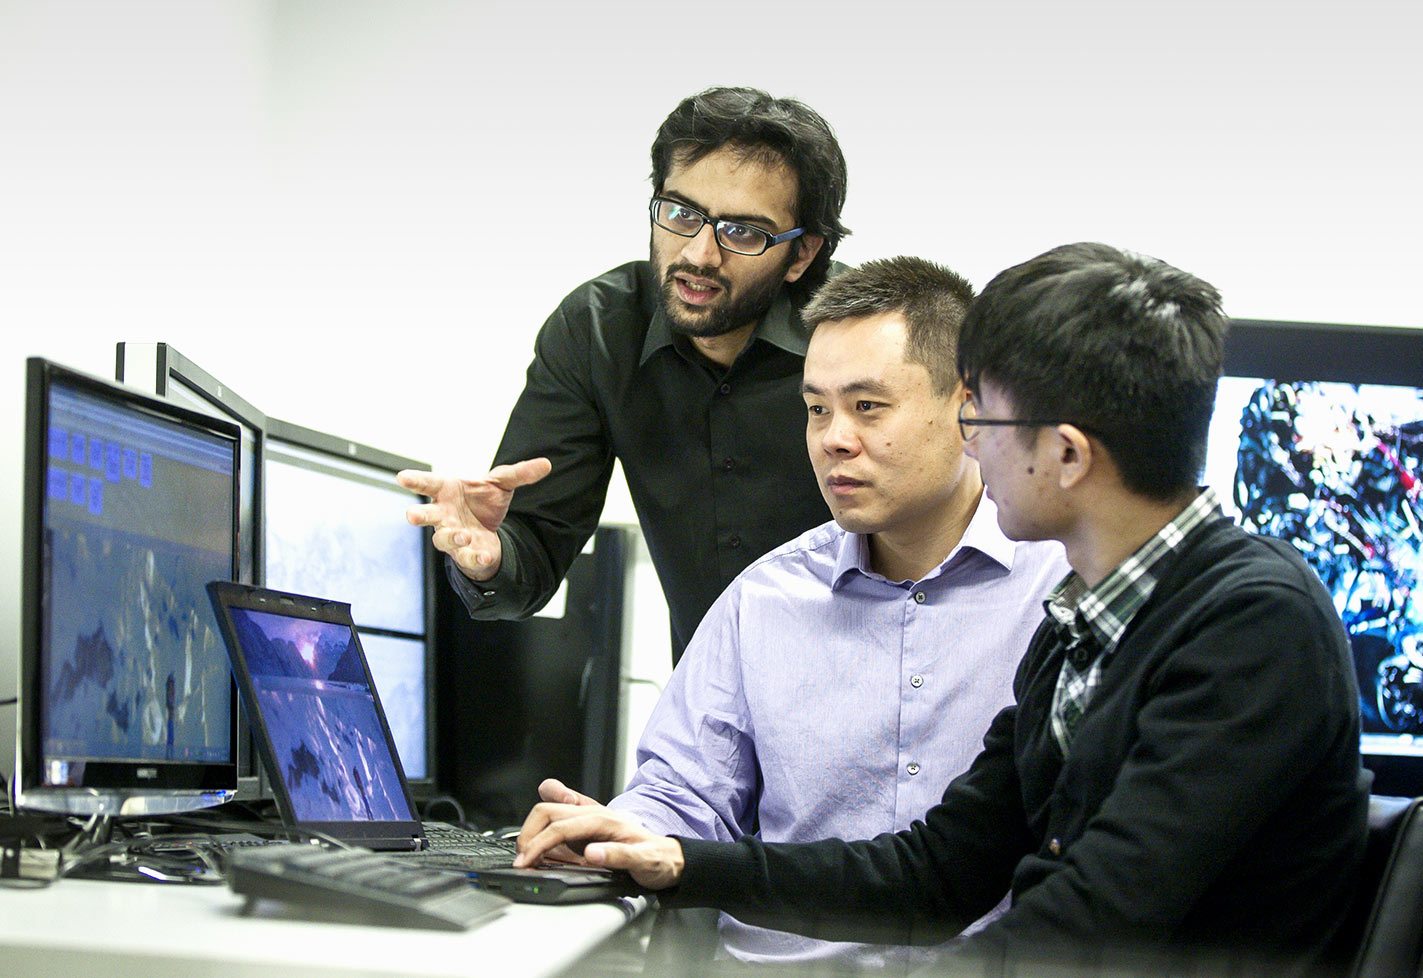 Dr Abdul Rehman, Dr Zhou Wang and Student in Video Lab at the University of Waterloo Assessing Video Quality of Experience